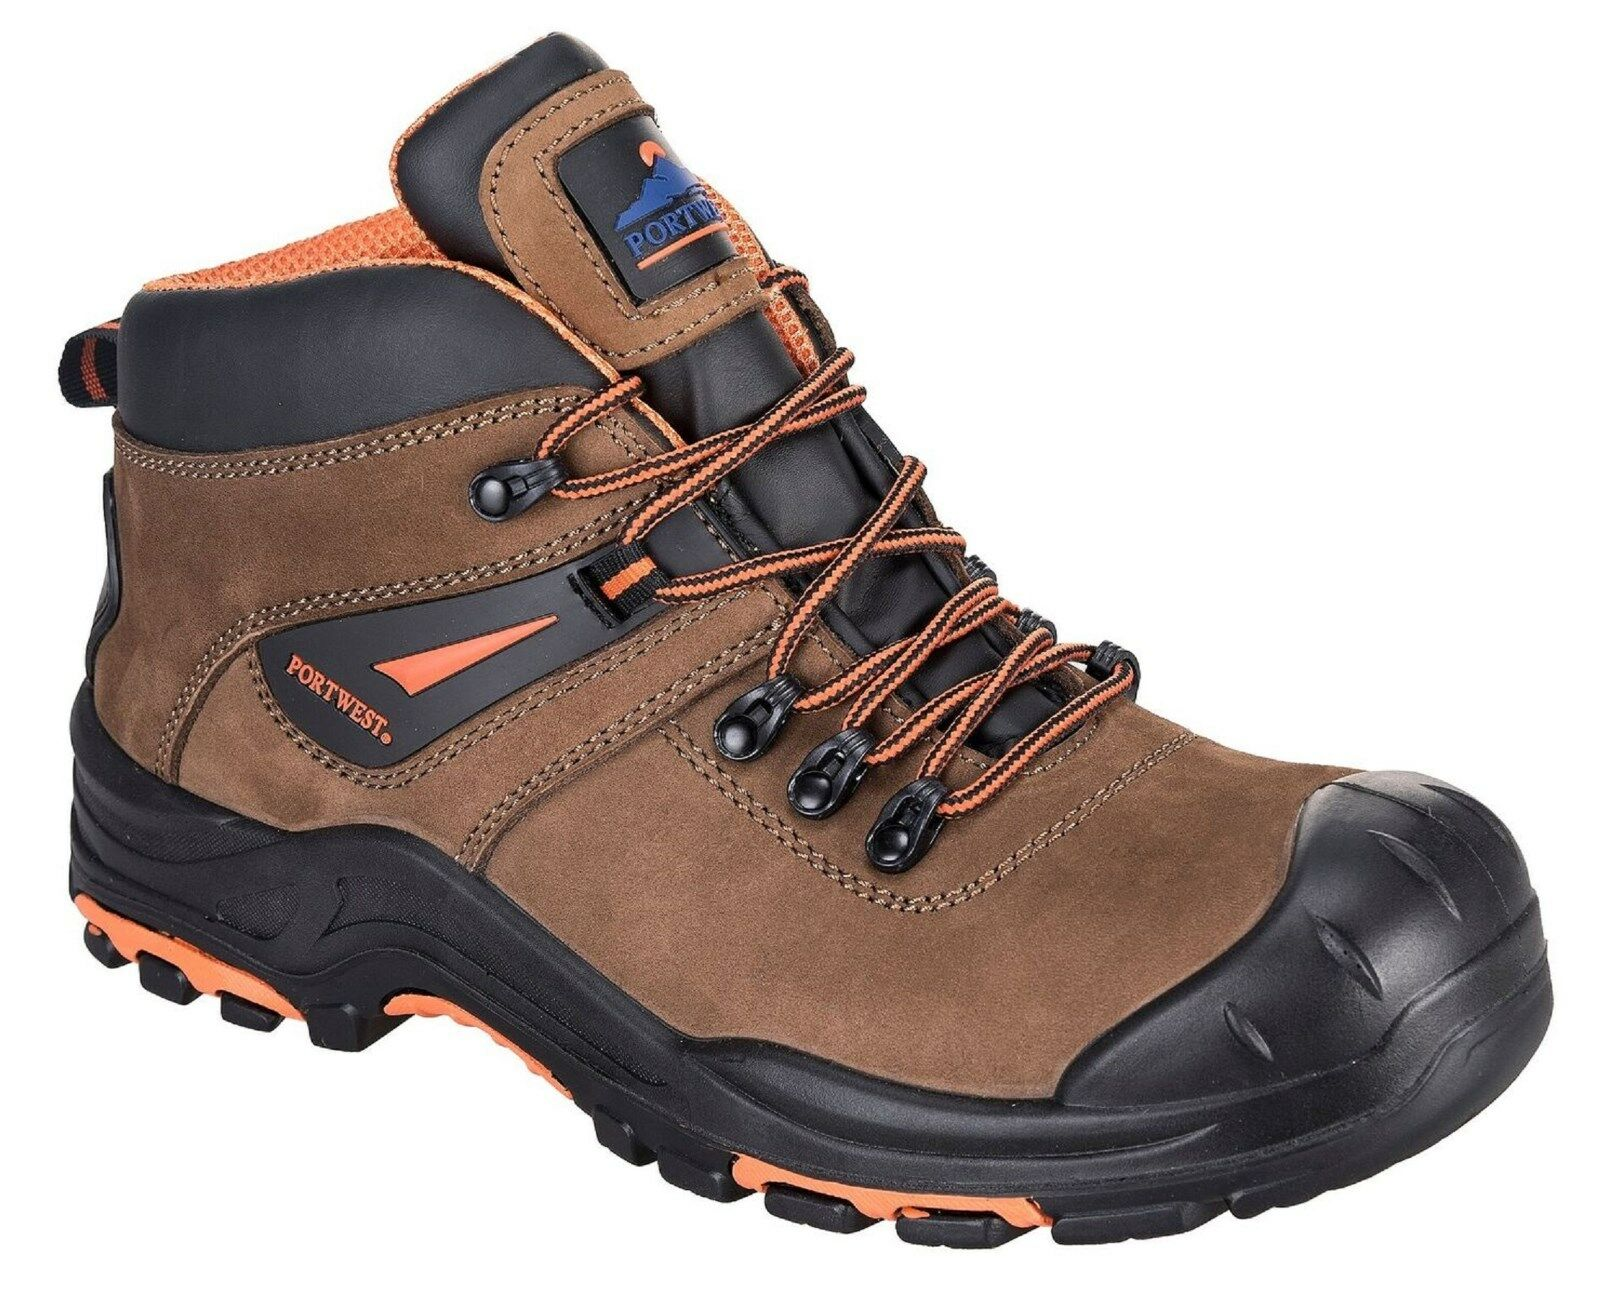 PORTWEST COMPOSITELITE MONTANA HIKER WIDE BOOT EH SIZE 7-14 WIDE HIKER FITTING EE 92656f